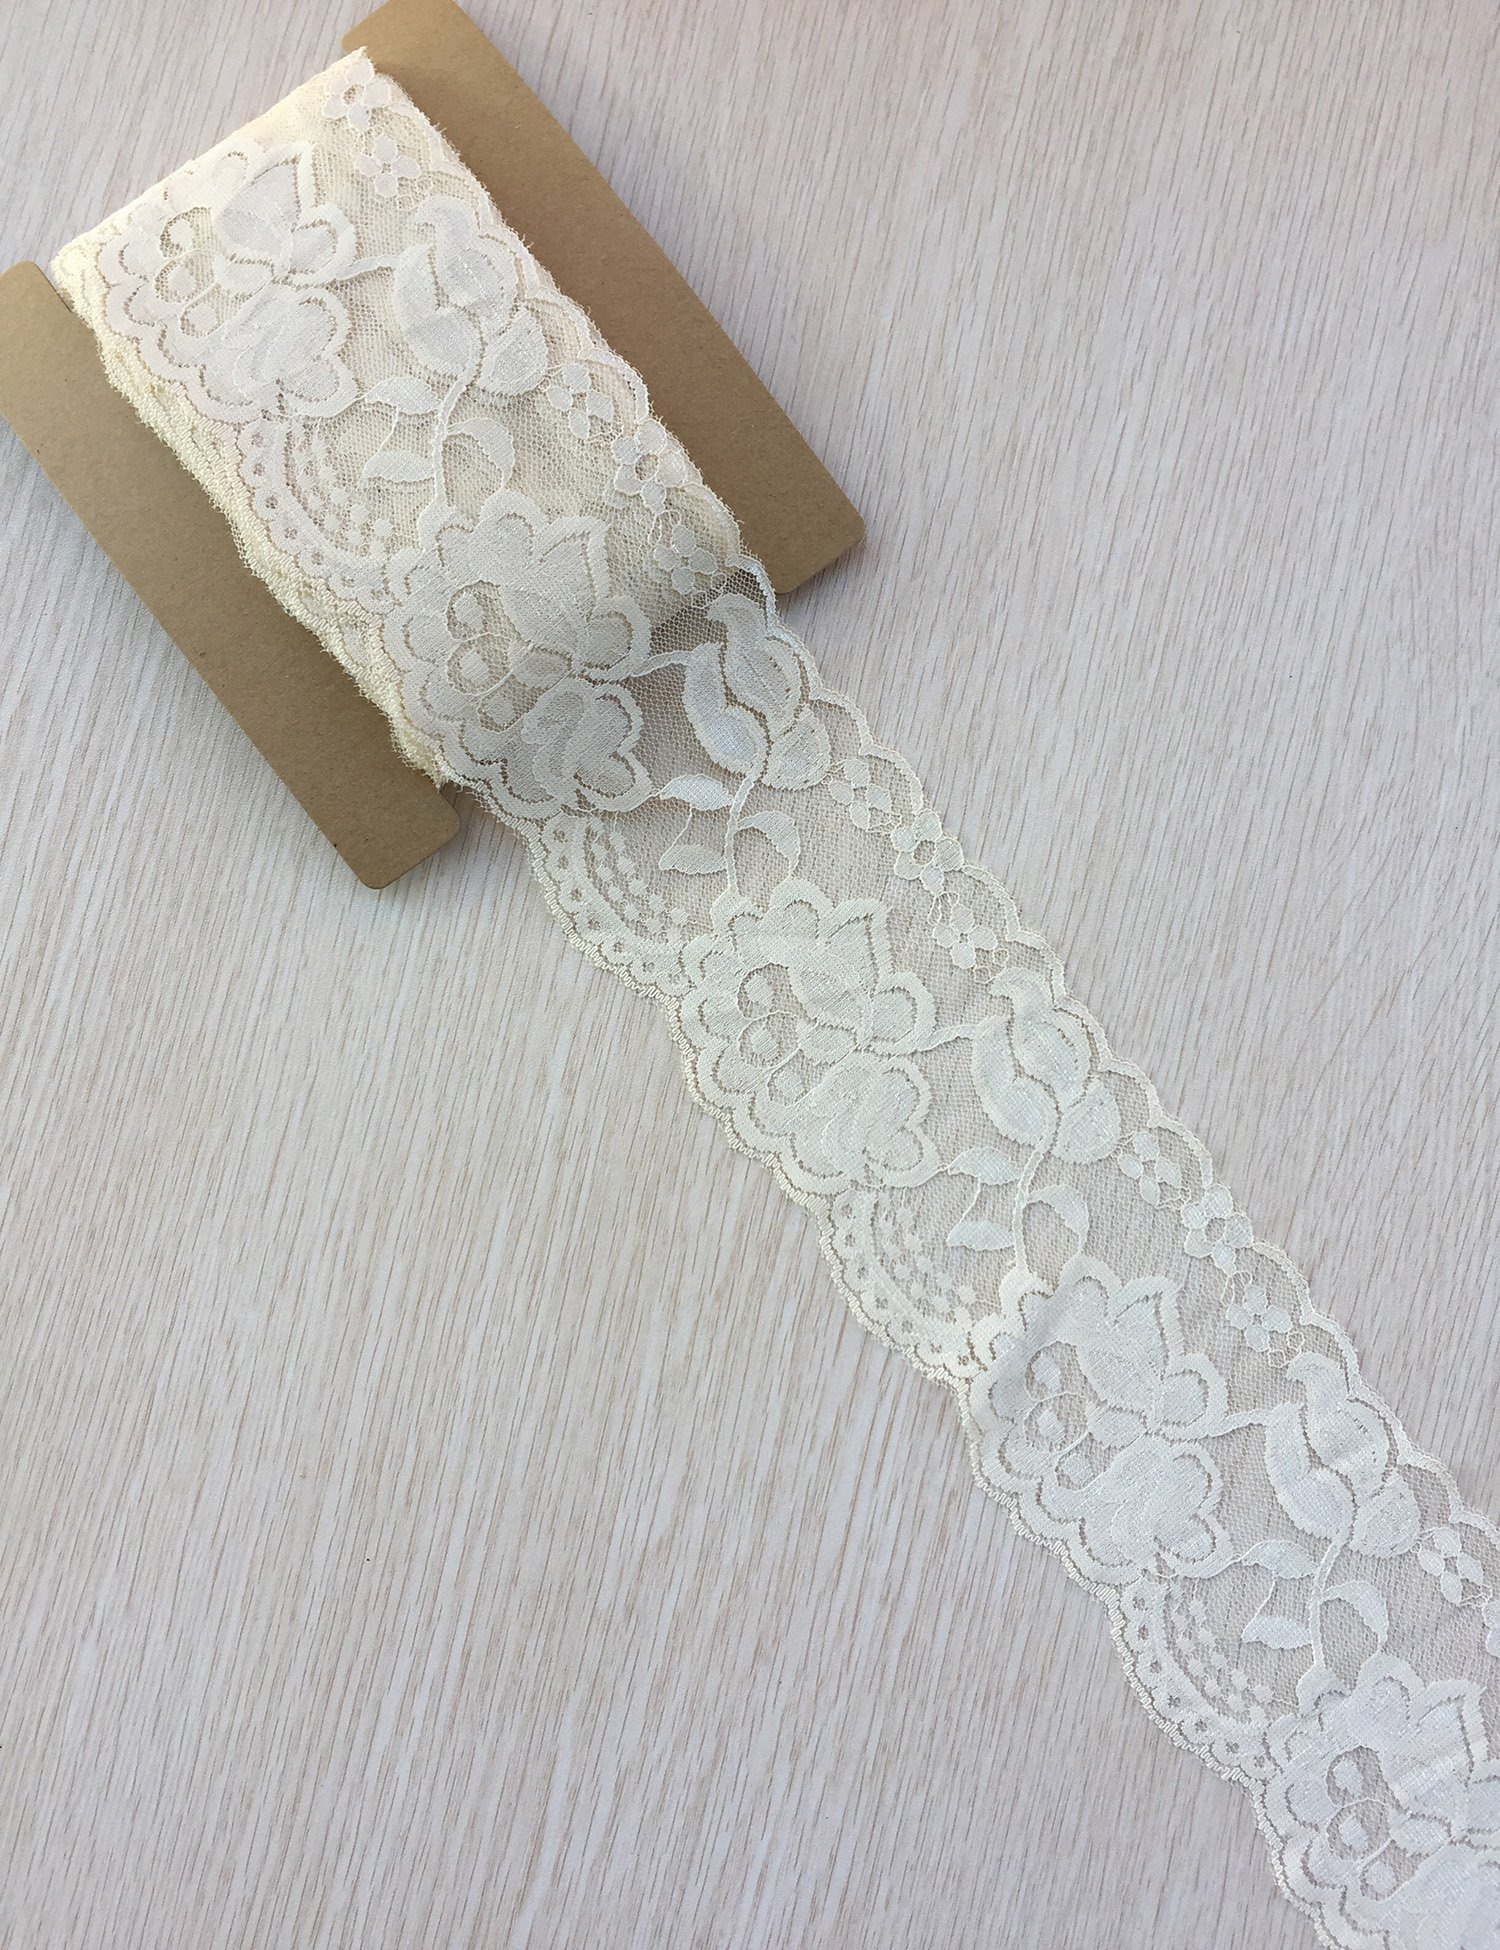 Expo International 7in April Chantilly Stretch Lace Trim Ivory